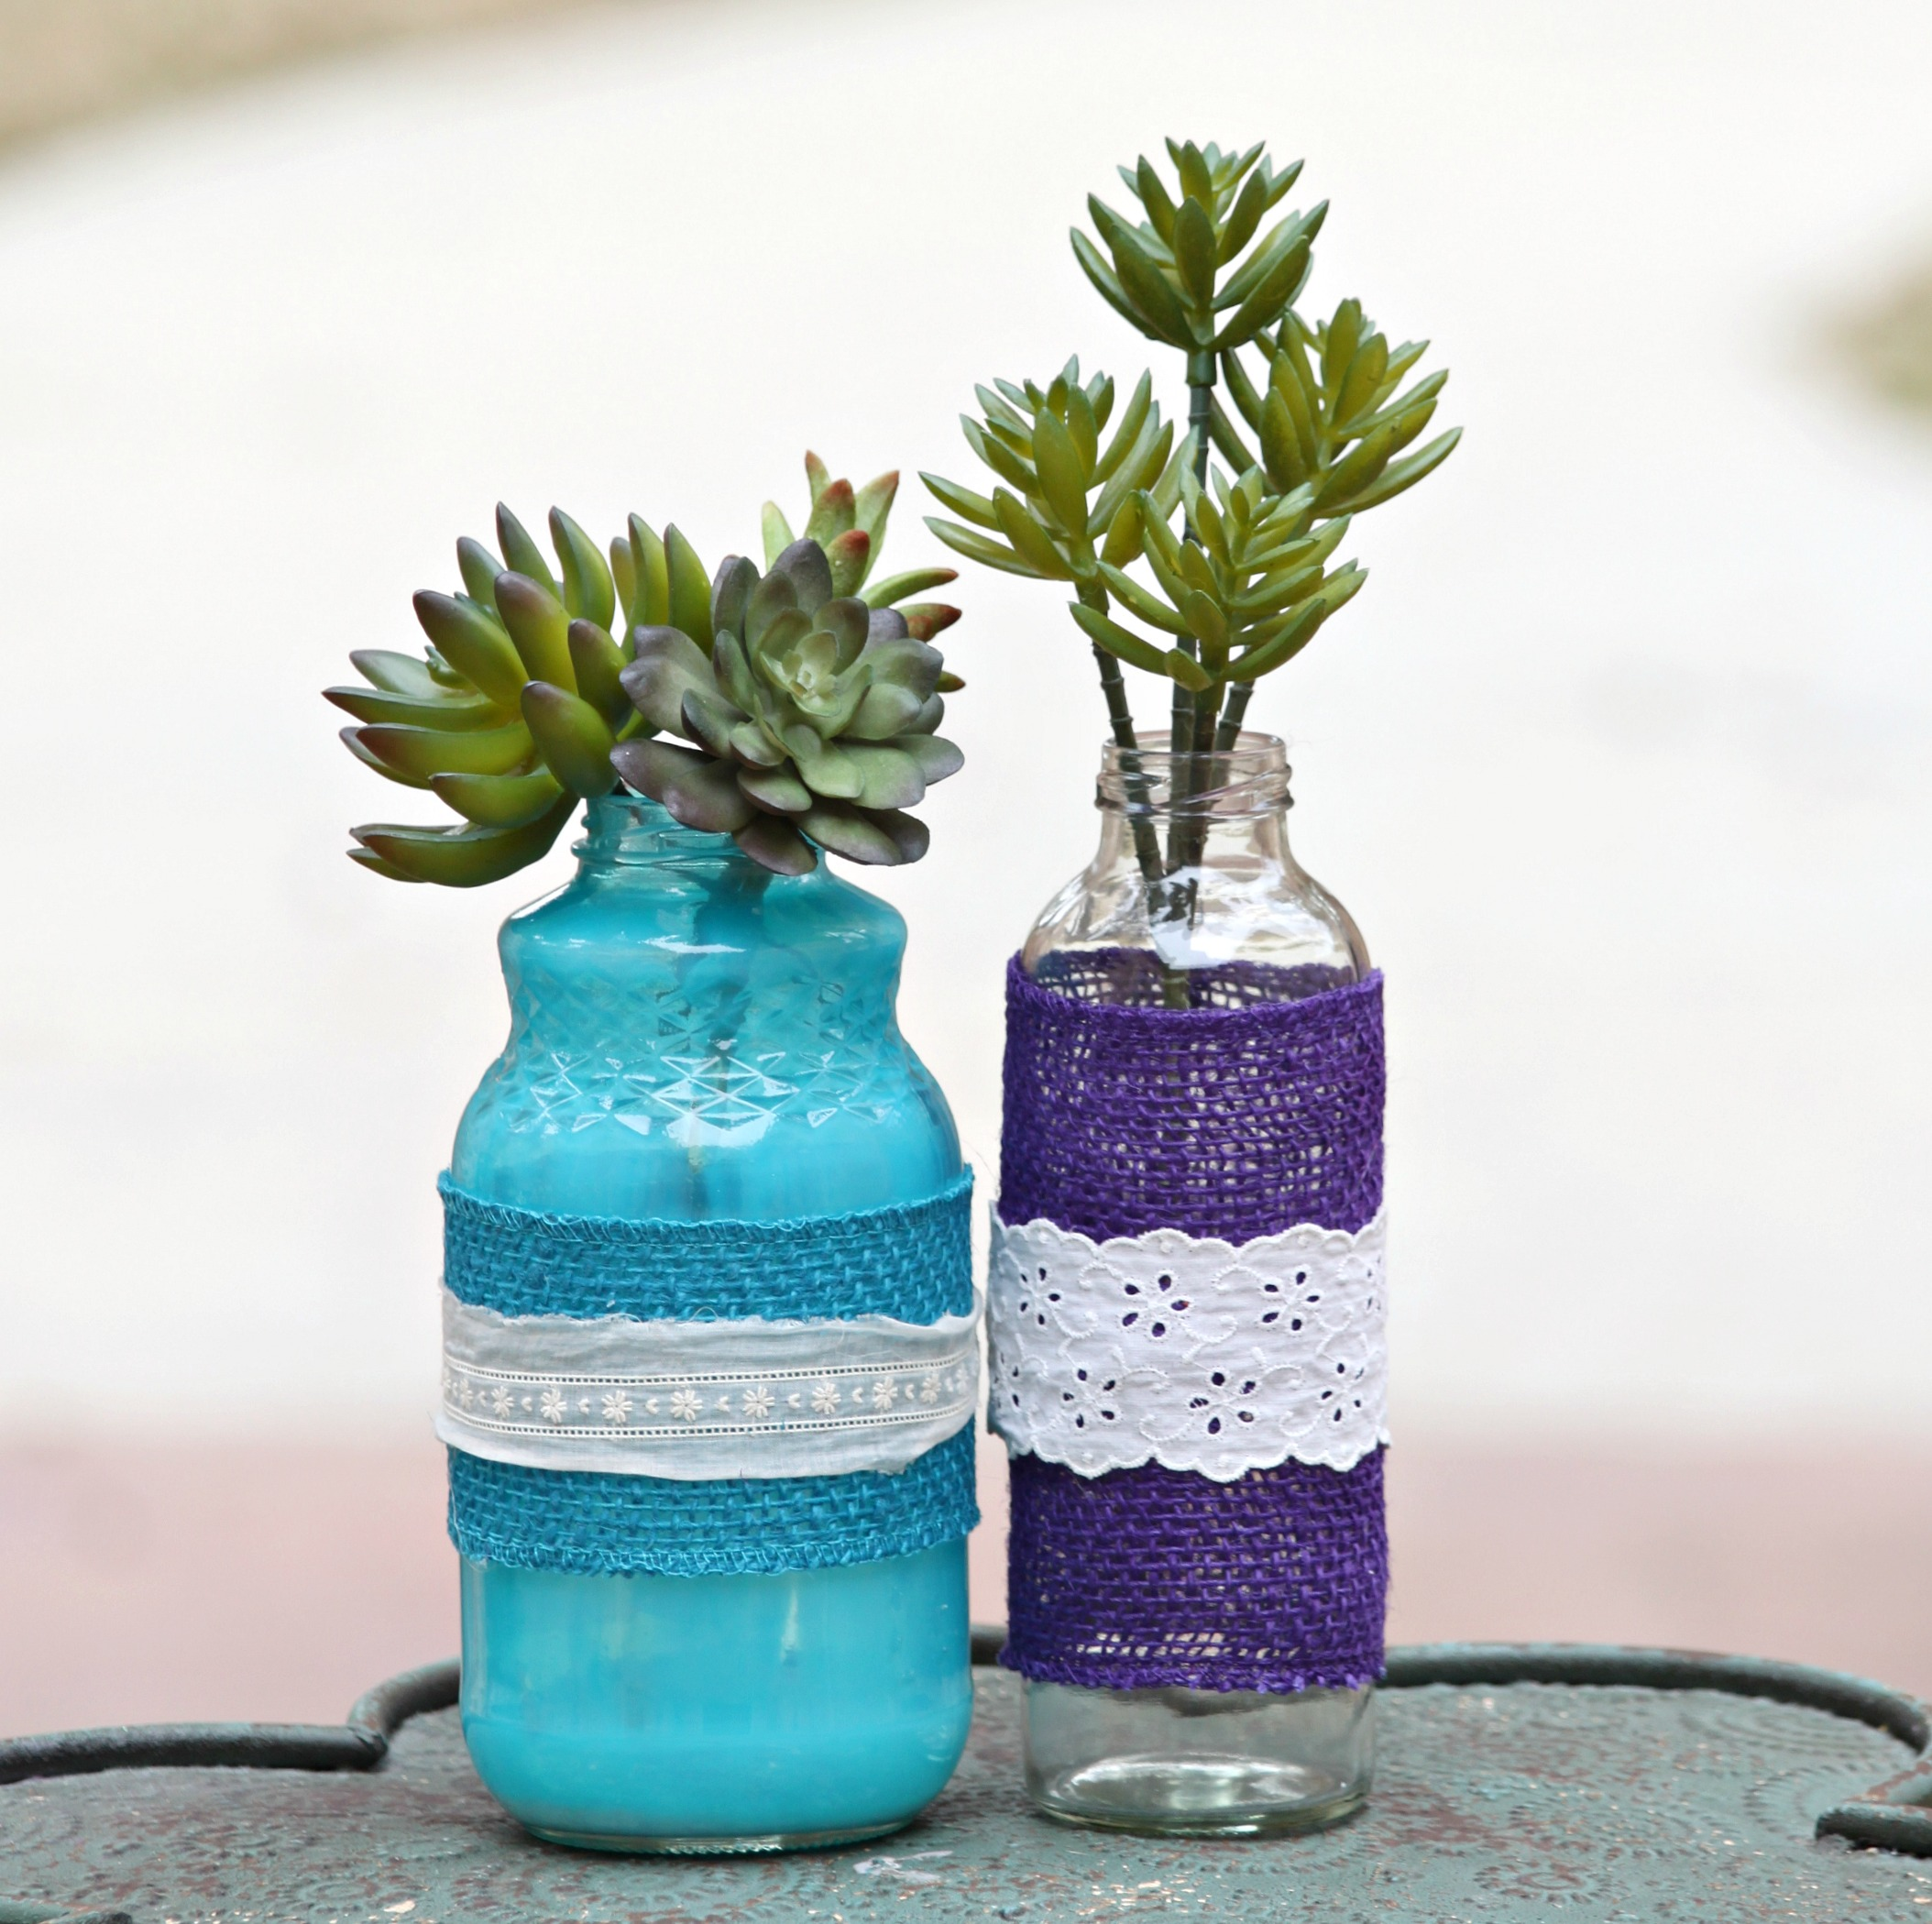 Knock Off Decor Make Succulent Centerpieces Morena S Corner